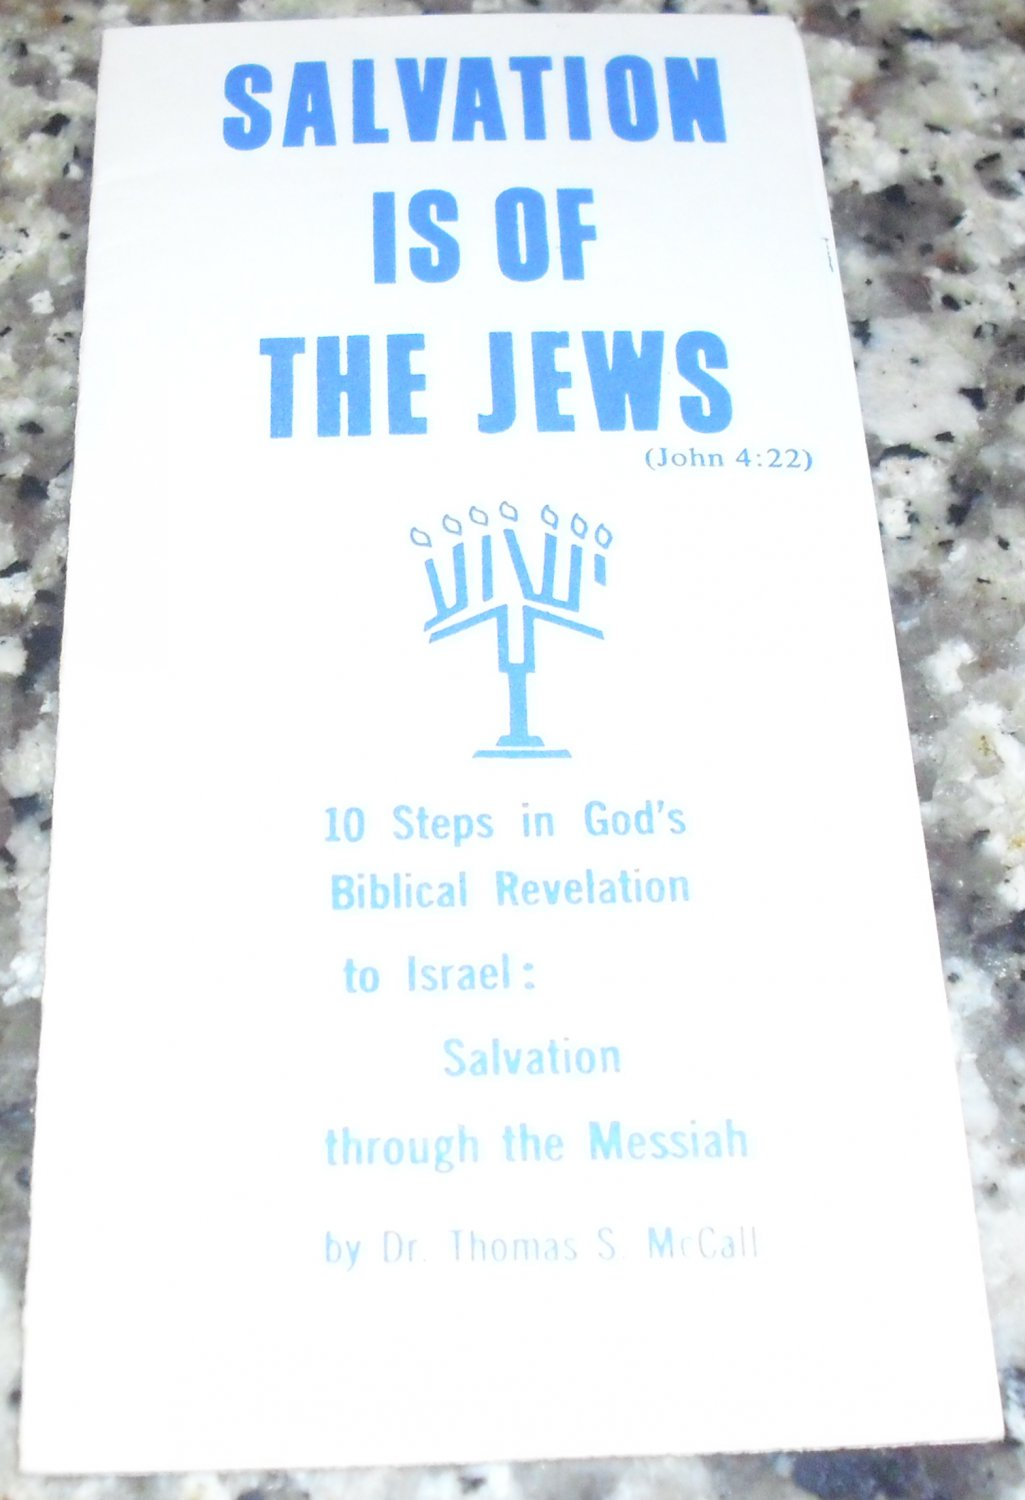 Salvation is Of the Jews: 10 Steps in God's Biblical Revelation by Dr. Thomas S. McCall